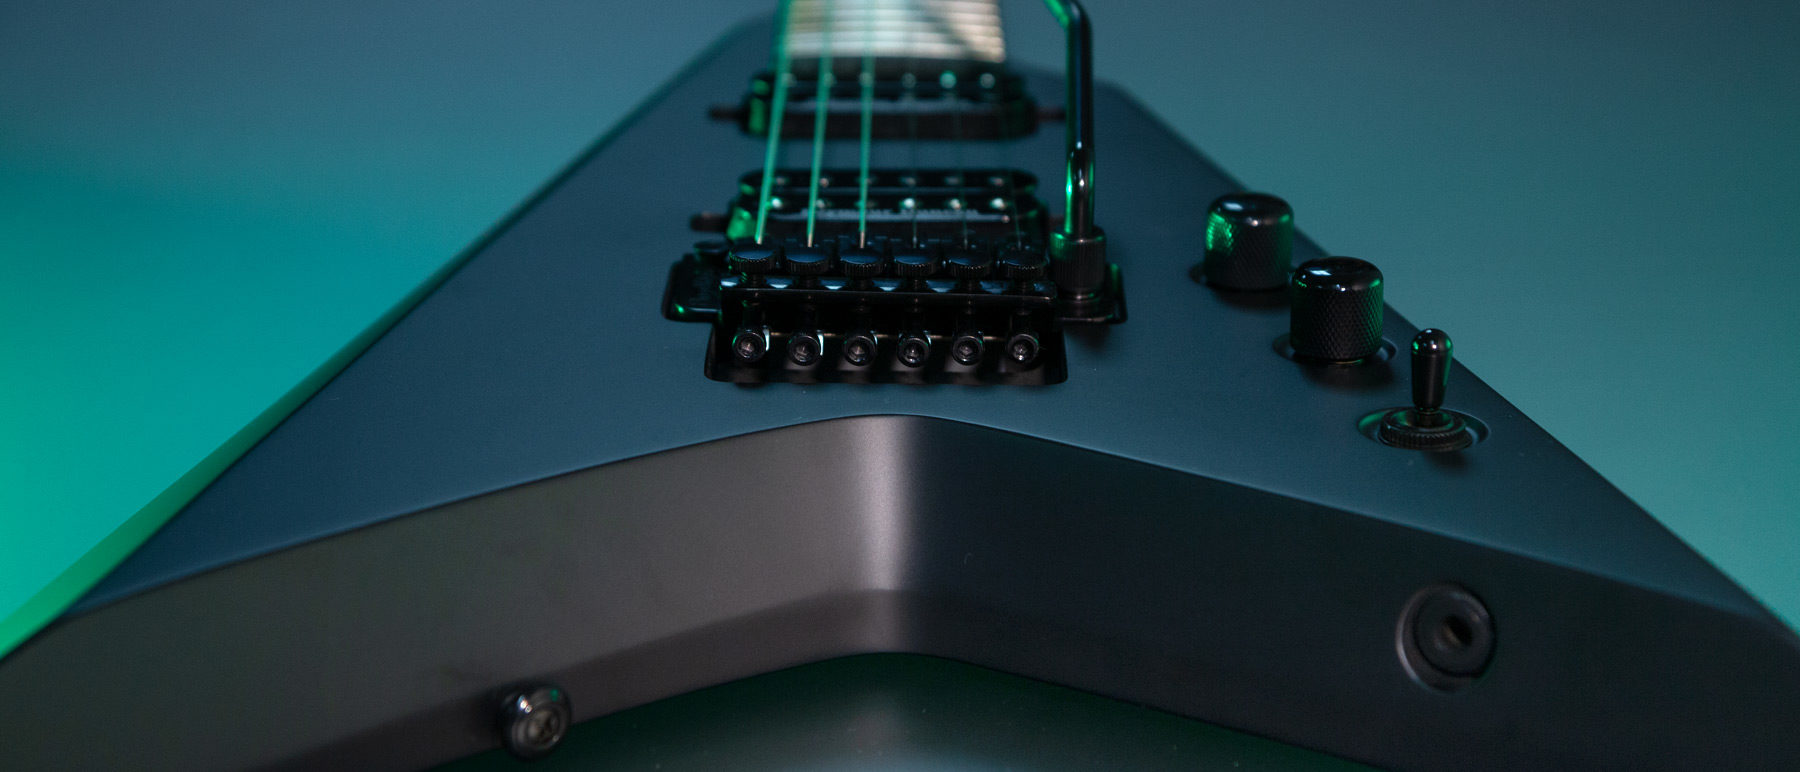 PXV26FRCK parallaxe v26fr close up of the Floyd Rose Bridge